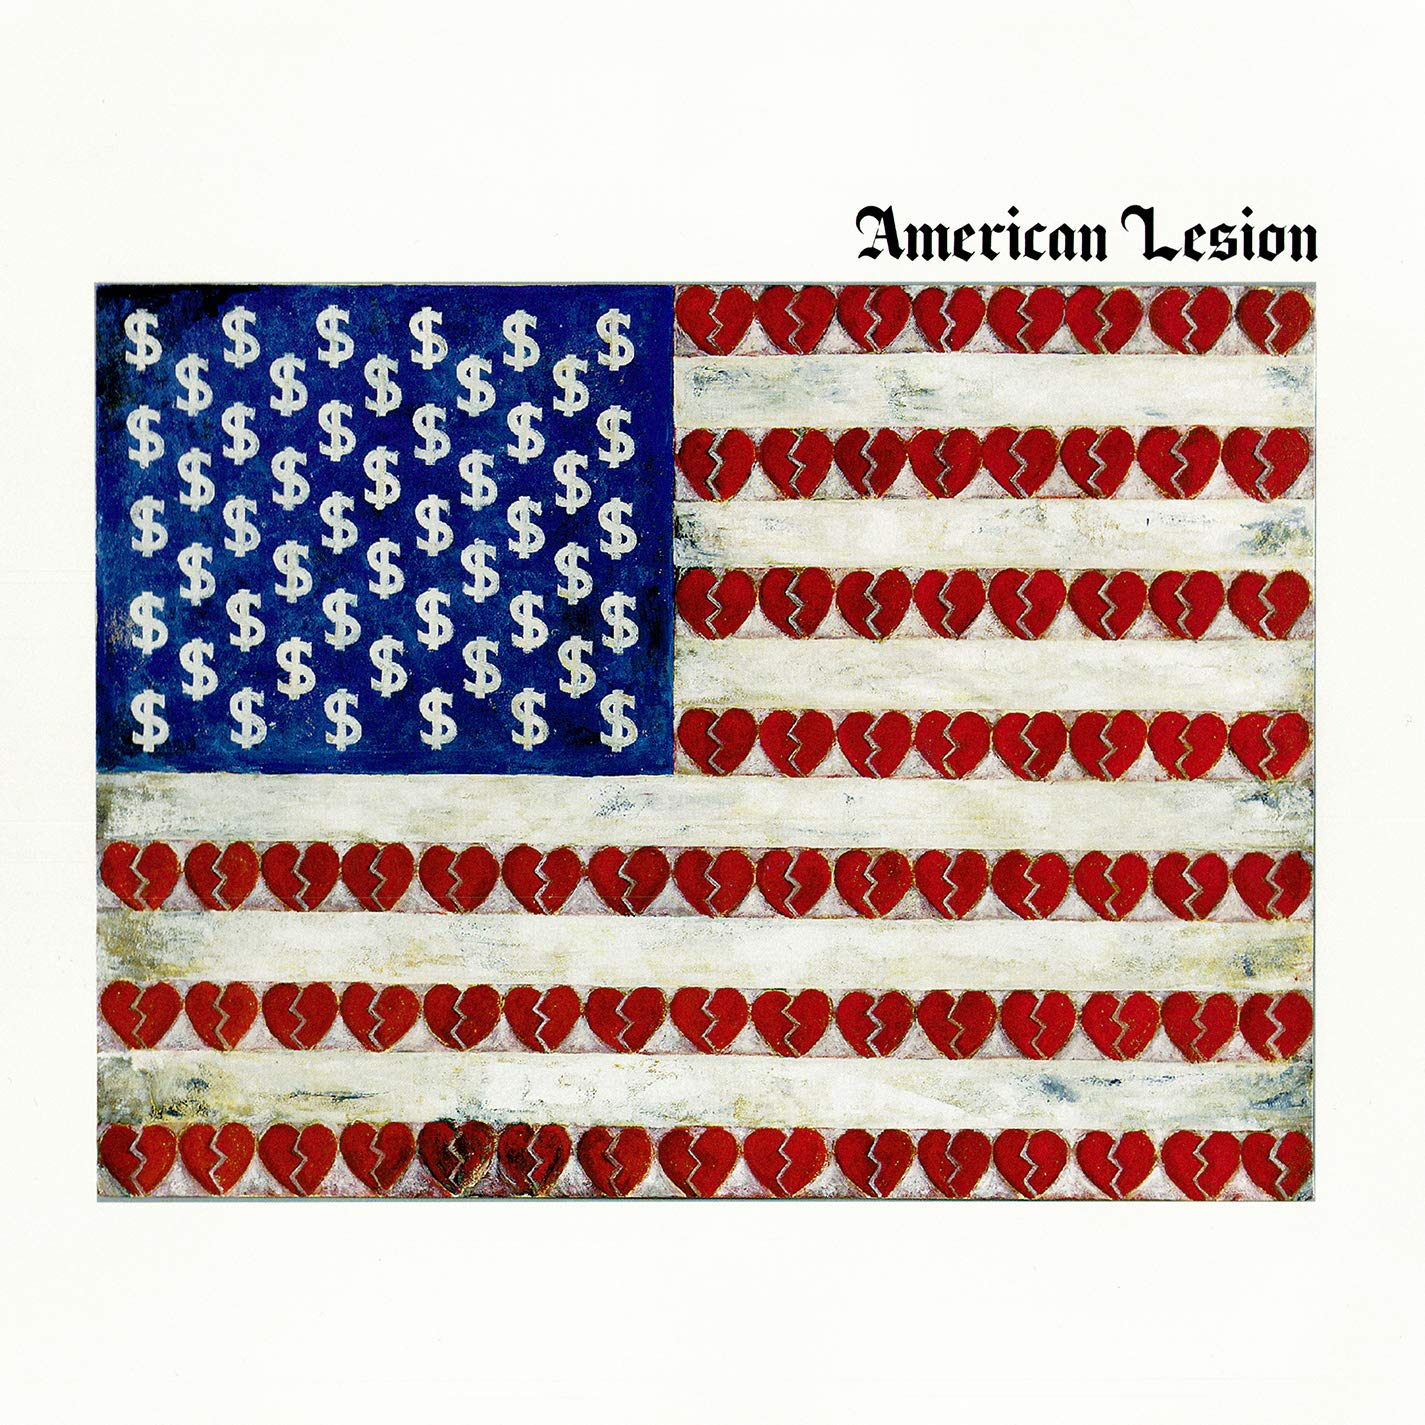 Greg Graffin - American Lesion [LP]